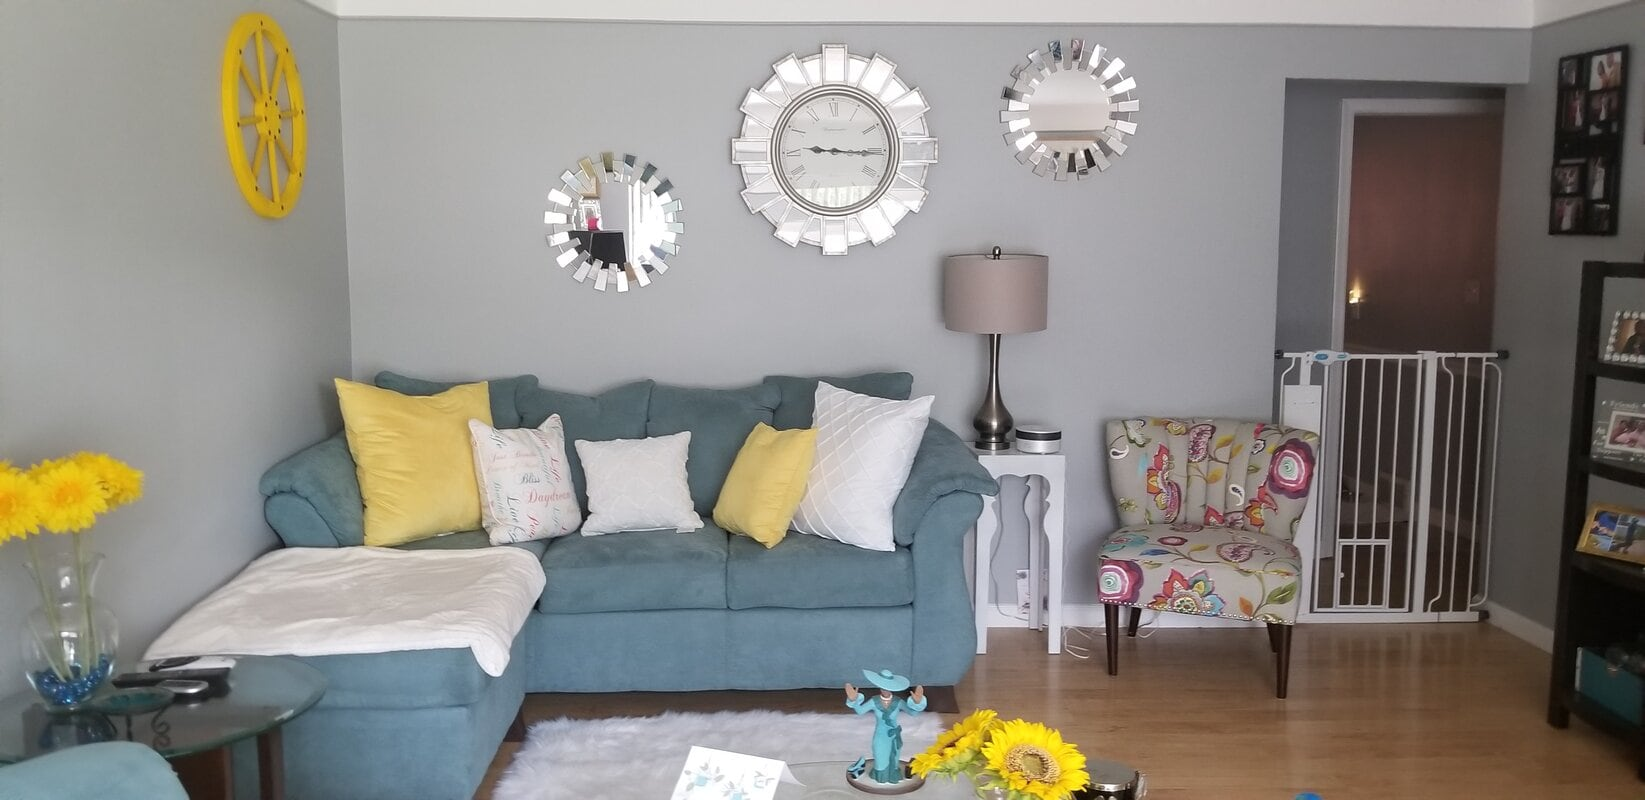 Grey And Teal With Yellow Accents